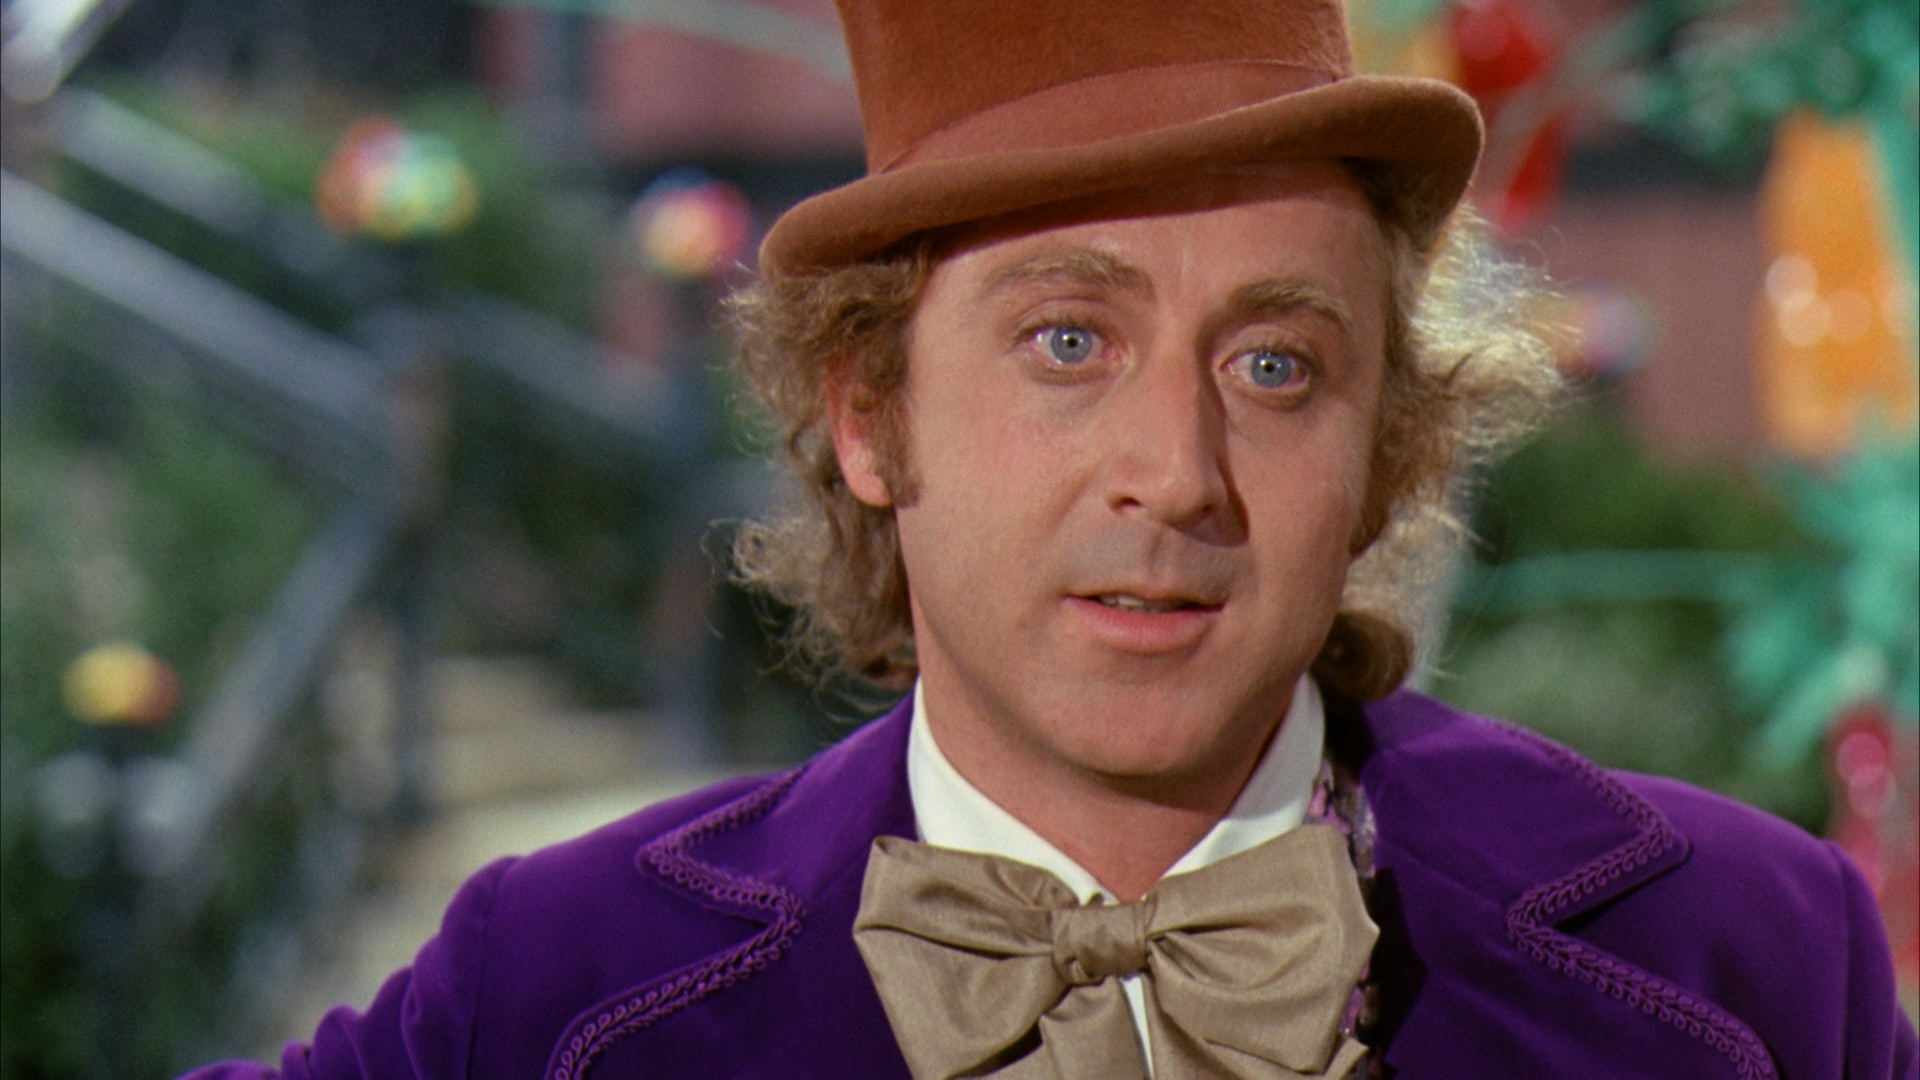 gene wilder daughtergene wilder pure imagination, gene wilder умер, gene wilder pure imagination mp3, gene wilder pure imagination скачать, gene wilder films, gene wilder pure imagination lyrics, gene wilder in young frankenstein, gene wilder википедия, gene wilder wikipedia, gene wilder gilda radner, gene wilder quotes, gene wilder bonnie and clyde, gene wilder doctor who, gene wilder daughter, gene wilder movies, gene wilder best movies, gene wilder young, gene wilder best scene, gene wilder you know morons, gene wilder willy wonka